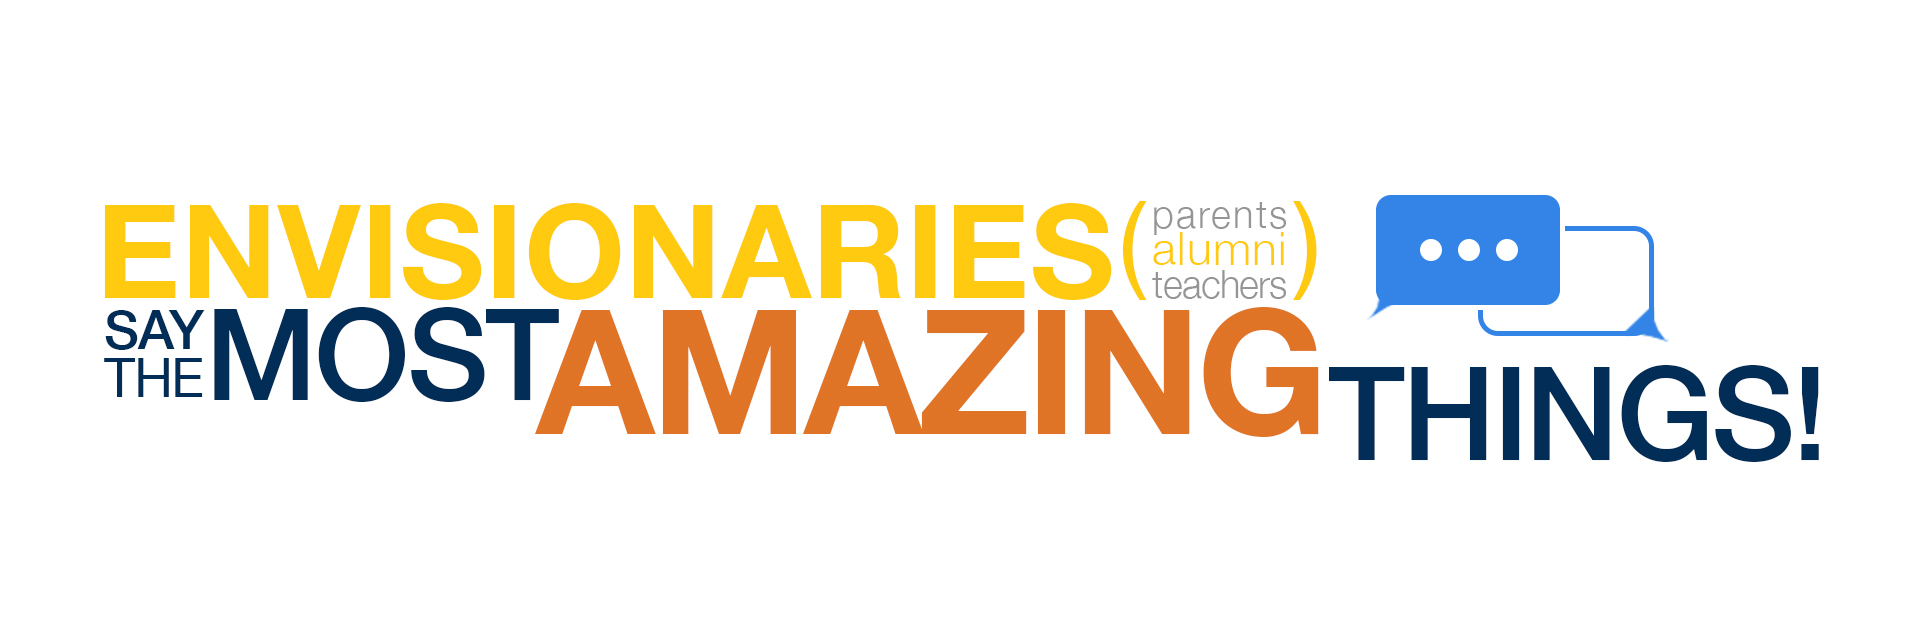 Envision Alumni, Teachers & Parents say the Most AMAZING things!